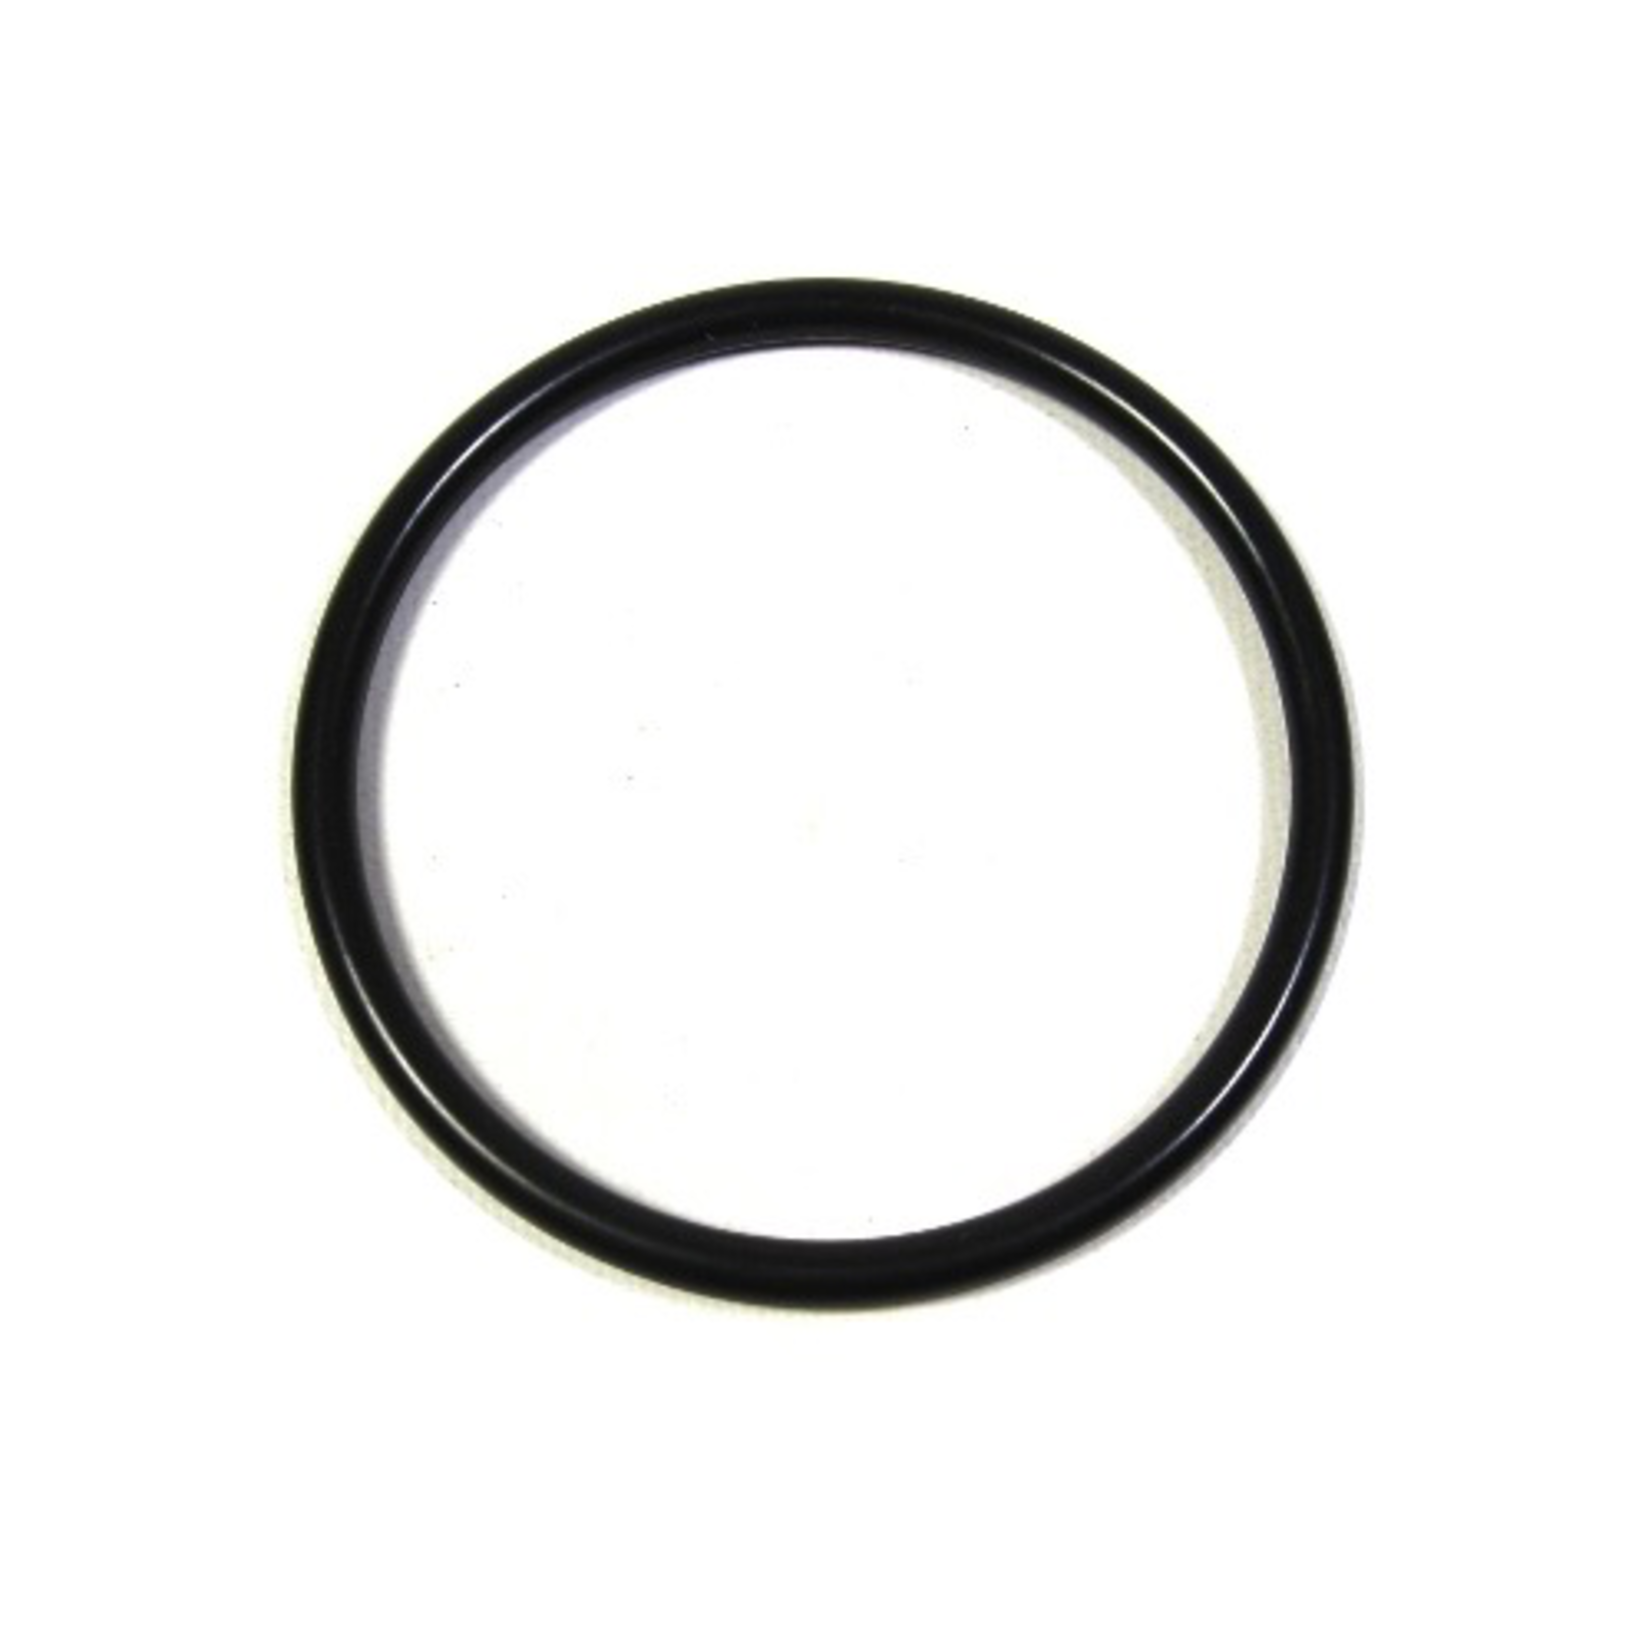 Parts Oring, BV350 Oil Filter Cover 53.65 x 2.62 Using 24mm Nut Cover